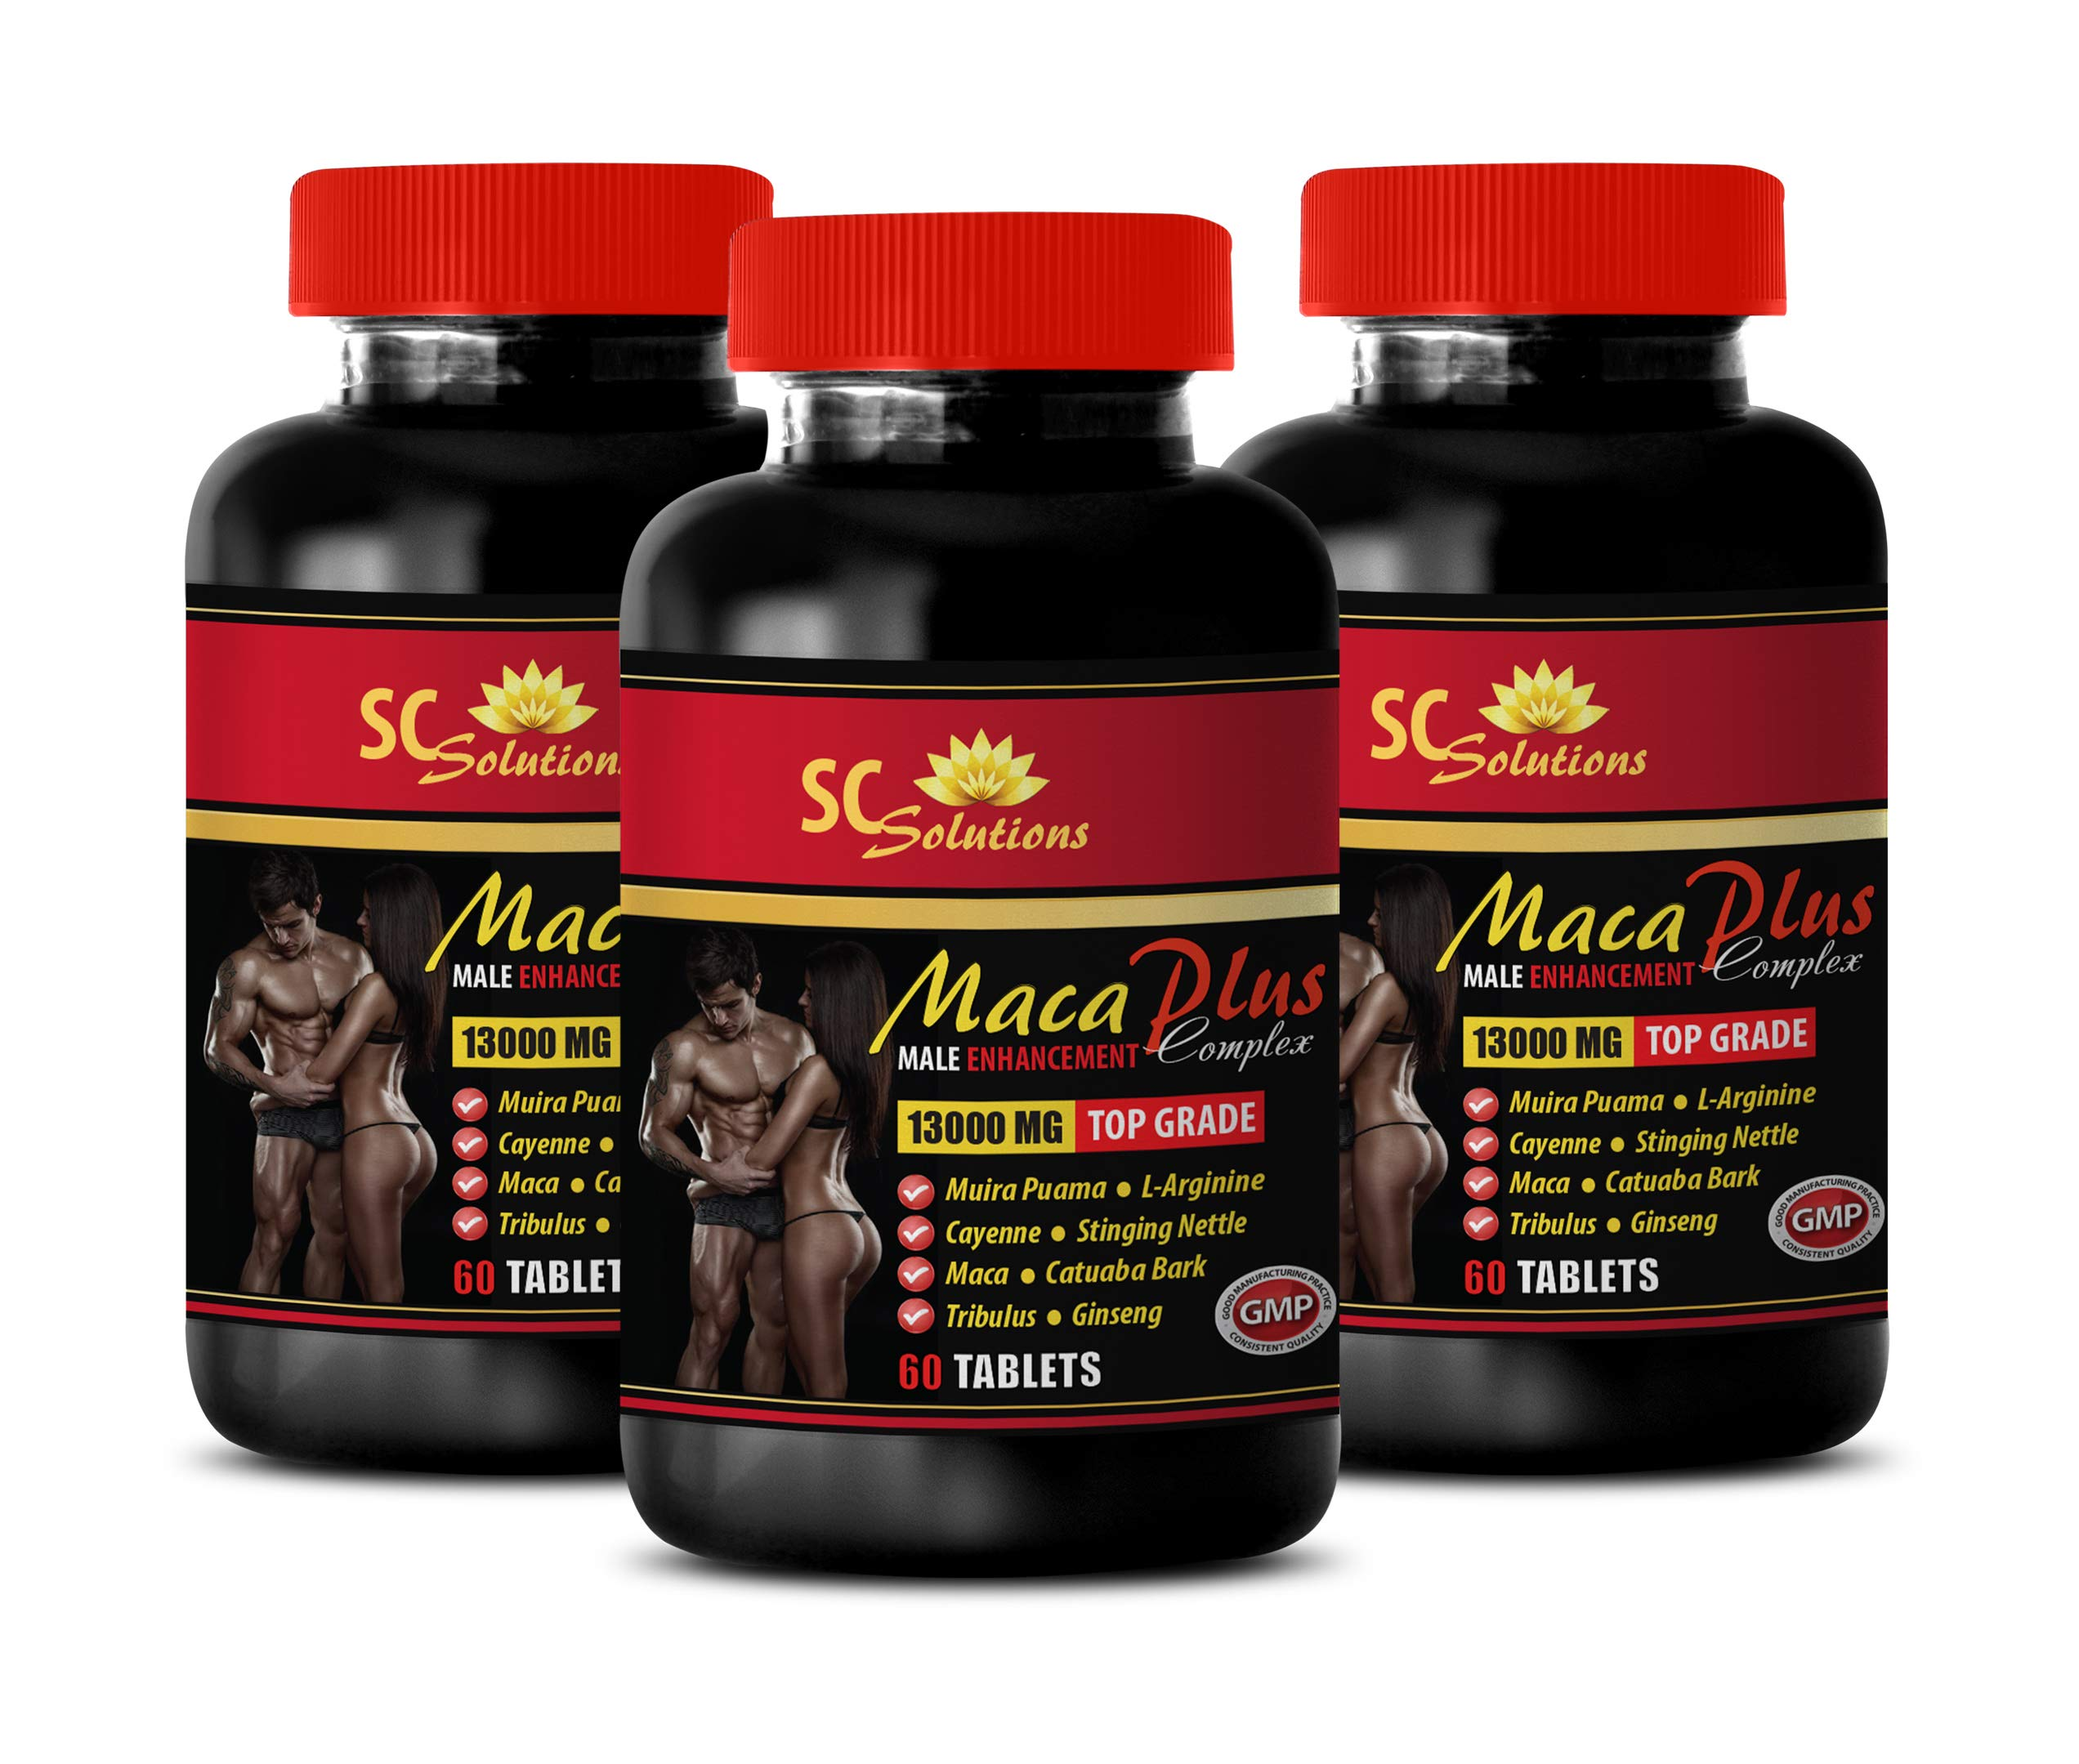 Sexual Supplements for Men - MACA Plus Complex - Male Enhancement - tribulus Ginseng - 3 Bottles 180 Tablets